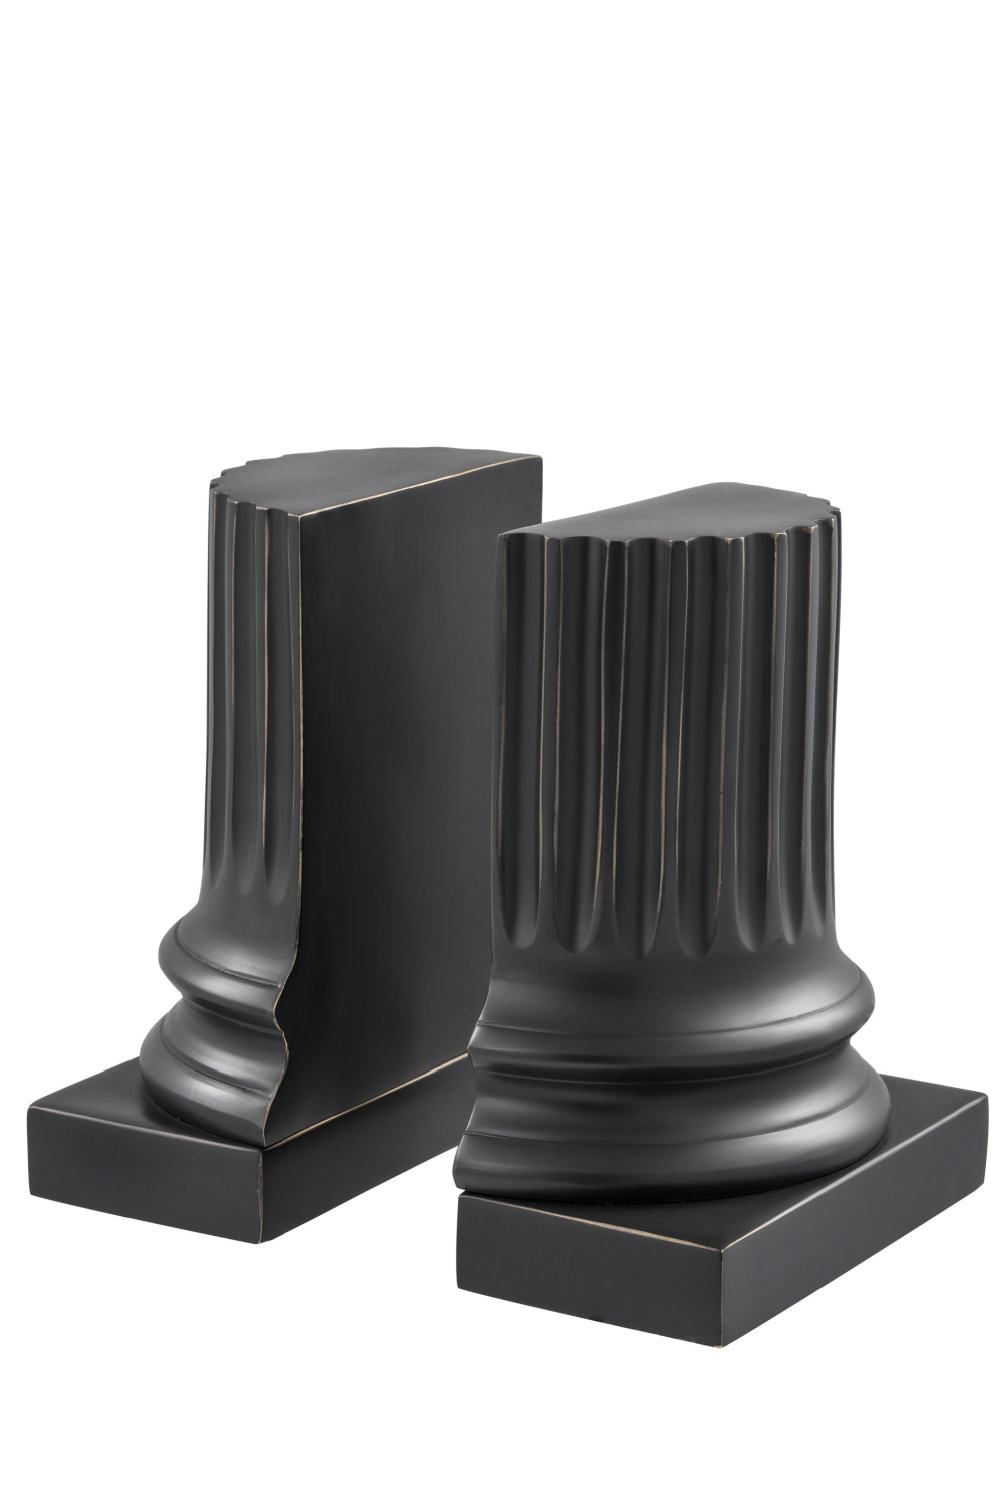 Bronze Bookends (set of 2) | Eichholtz Pillar | #1 Eichholtz Online Retailer